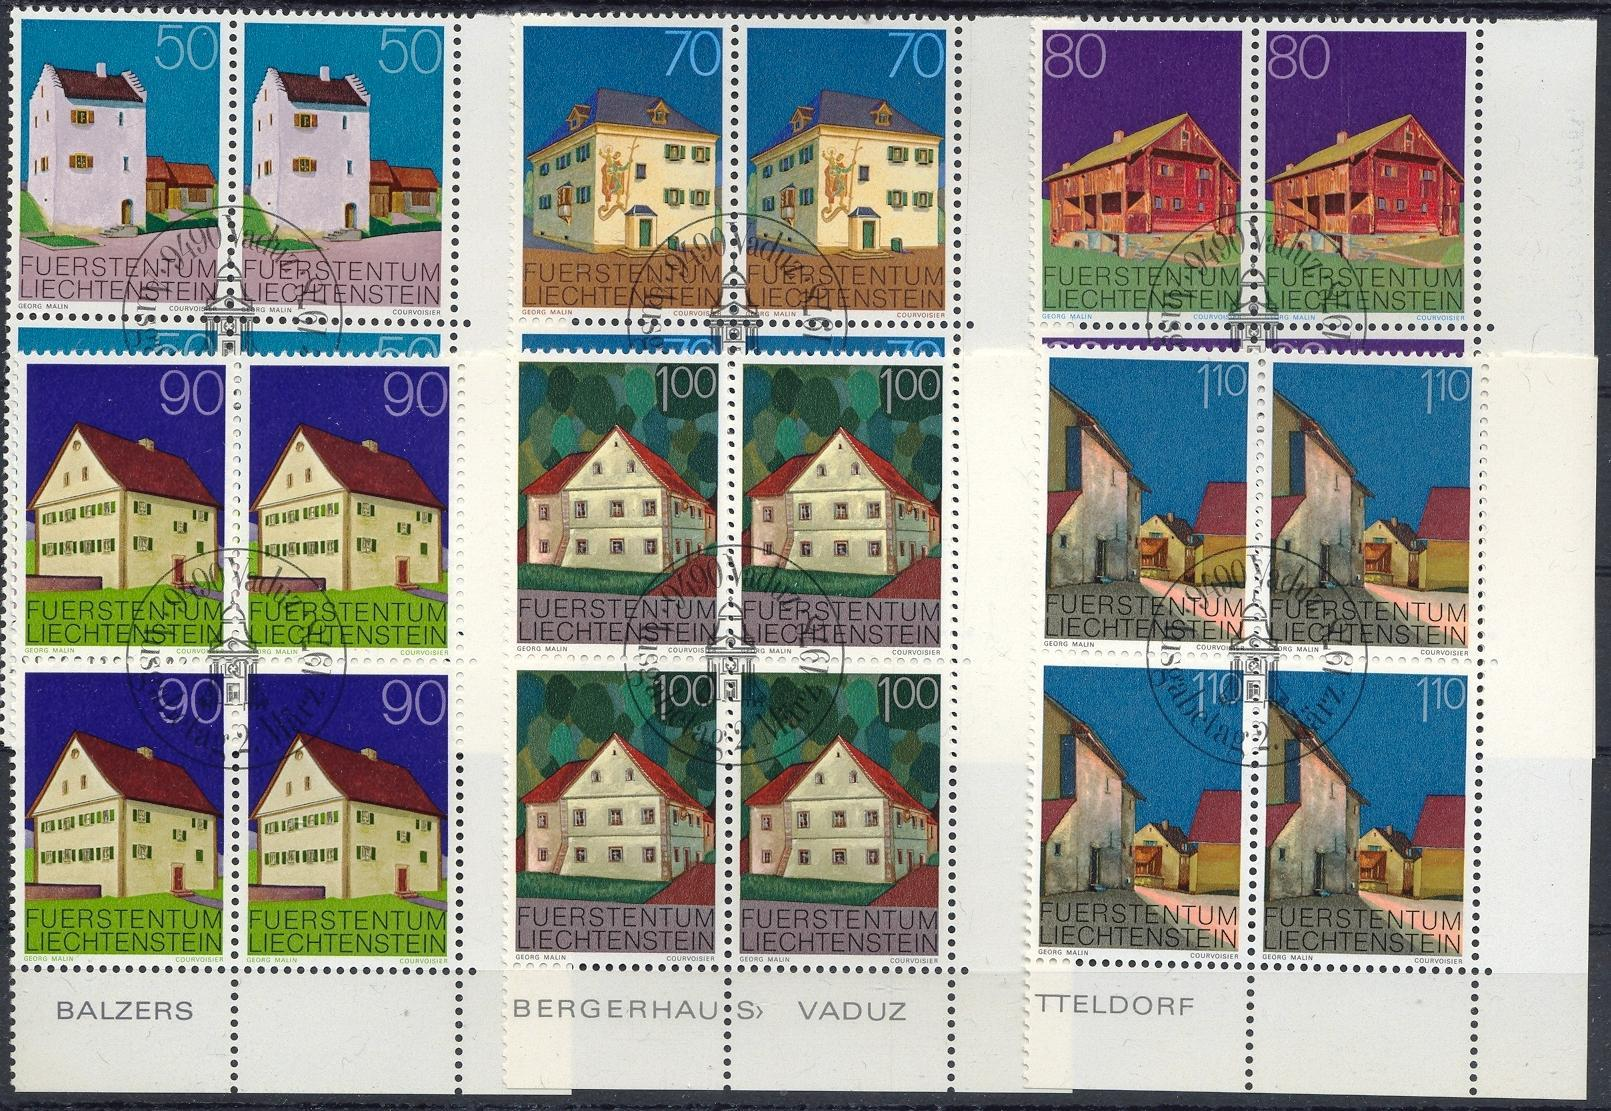 Stamps with Architecture from Liechtenstein (image for product #032214)